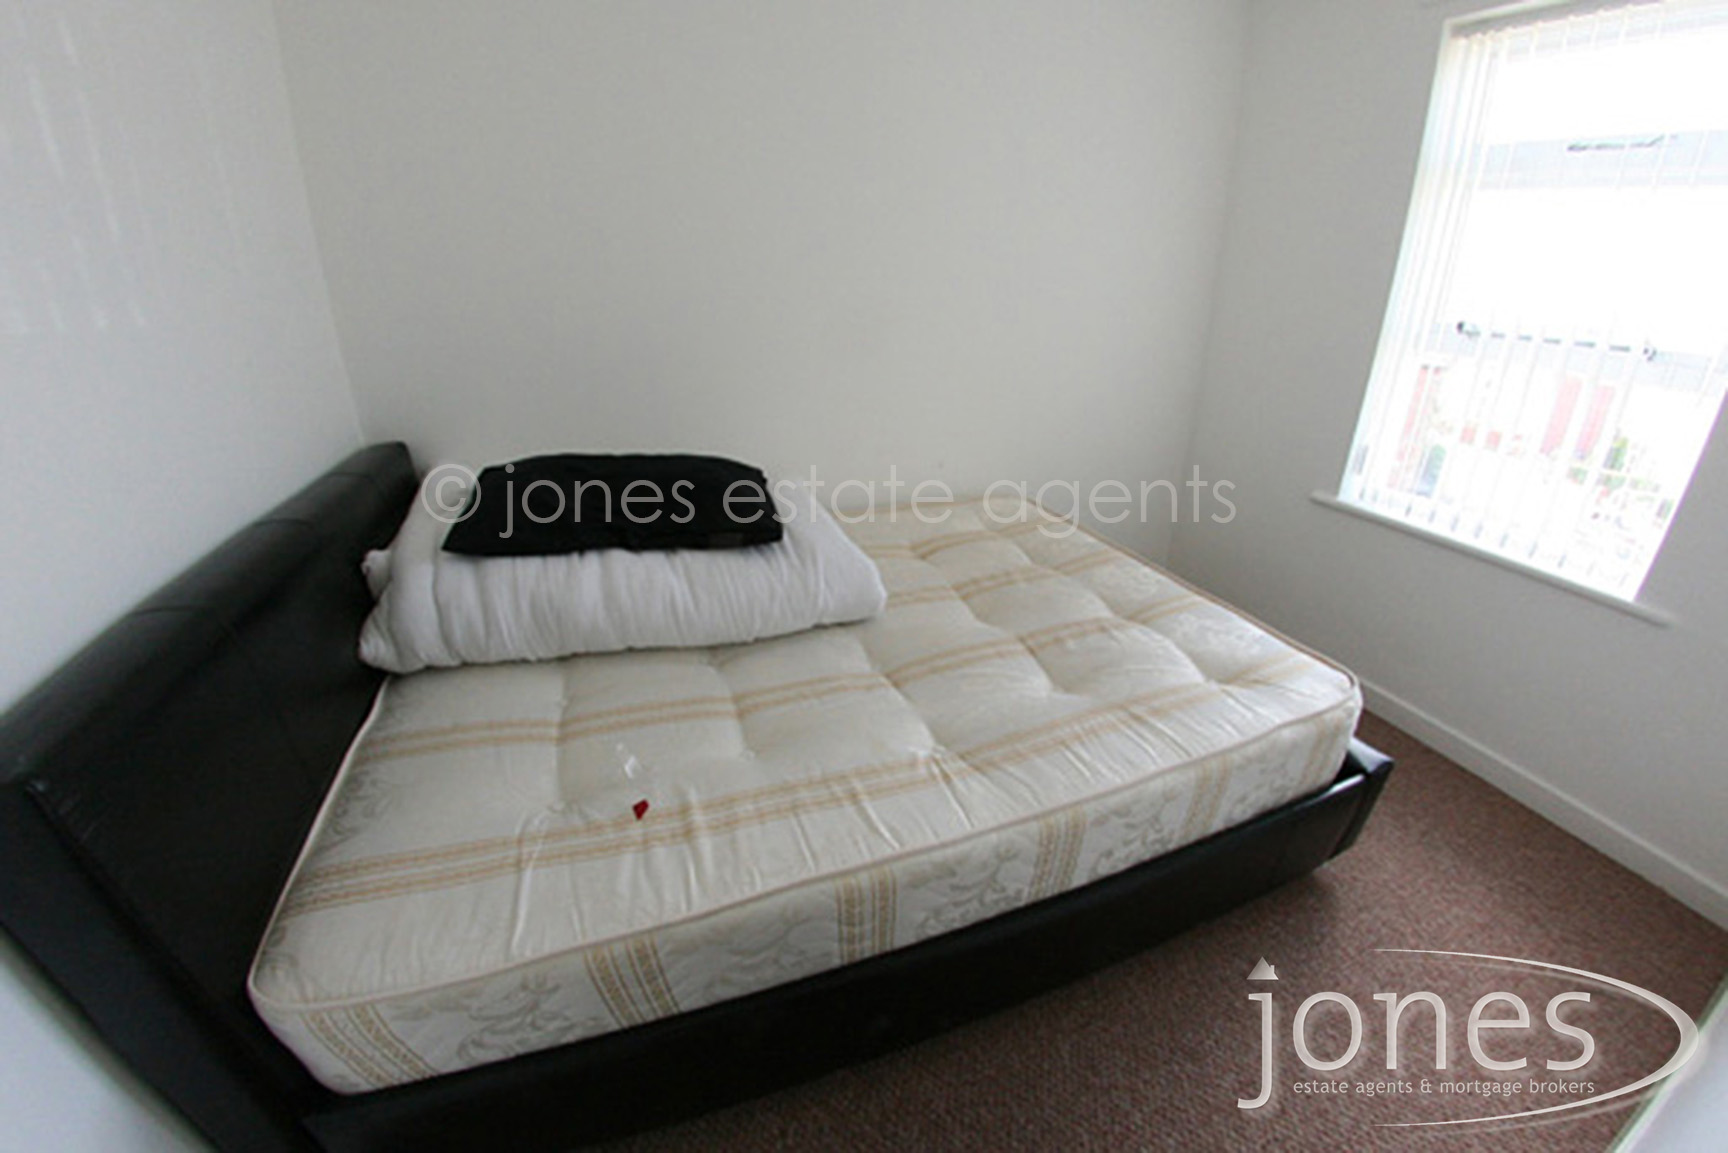 Home for Sale Let - Photo 04 Galleysfields Court,  The Headland, Hartlepool, TS24 0NB